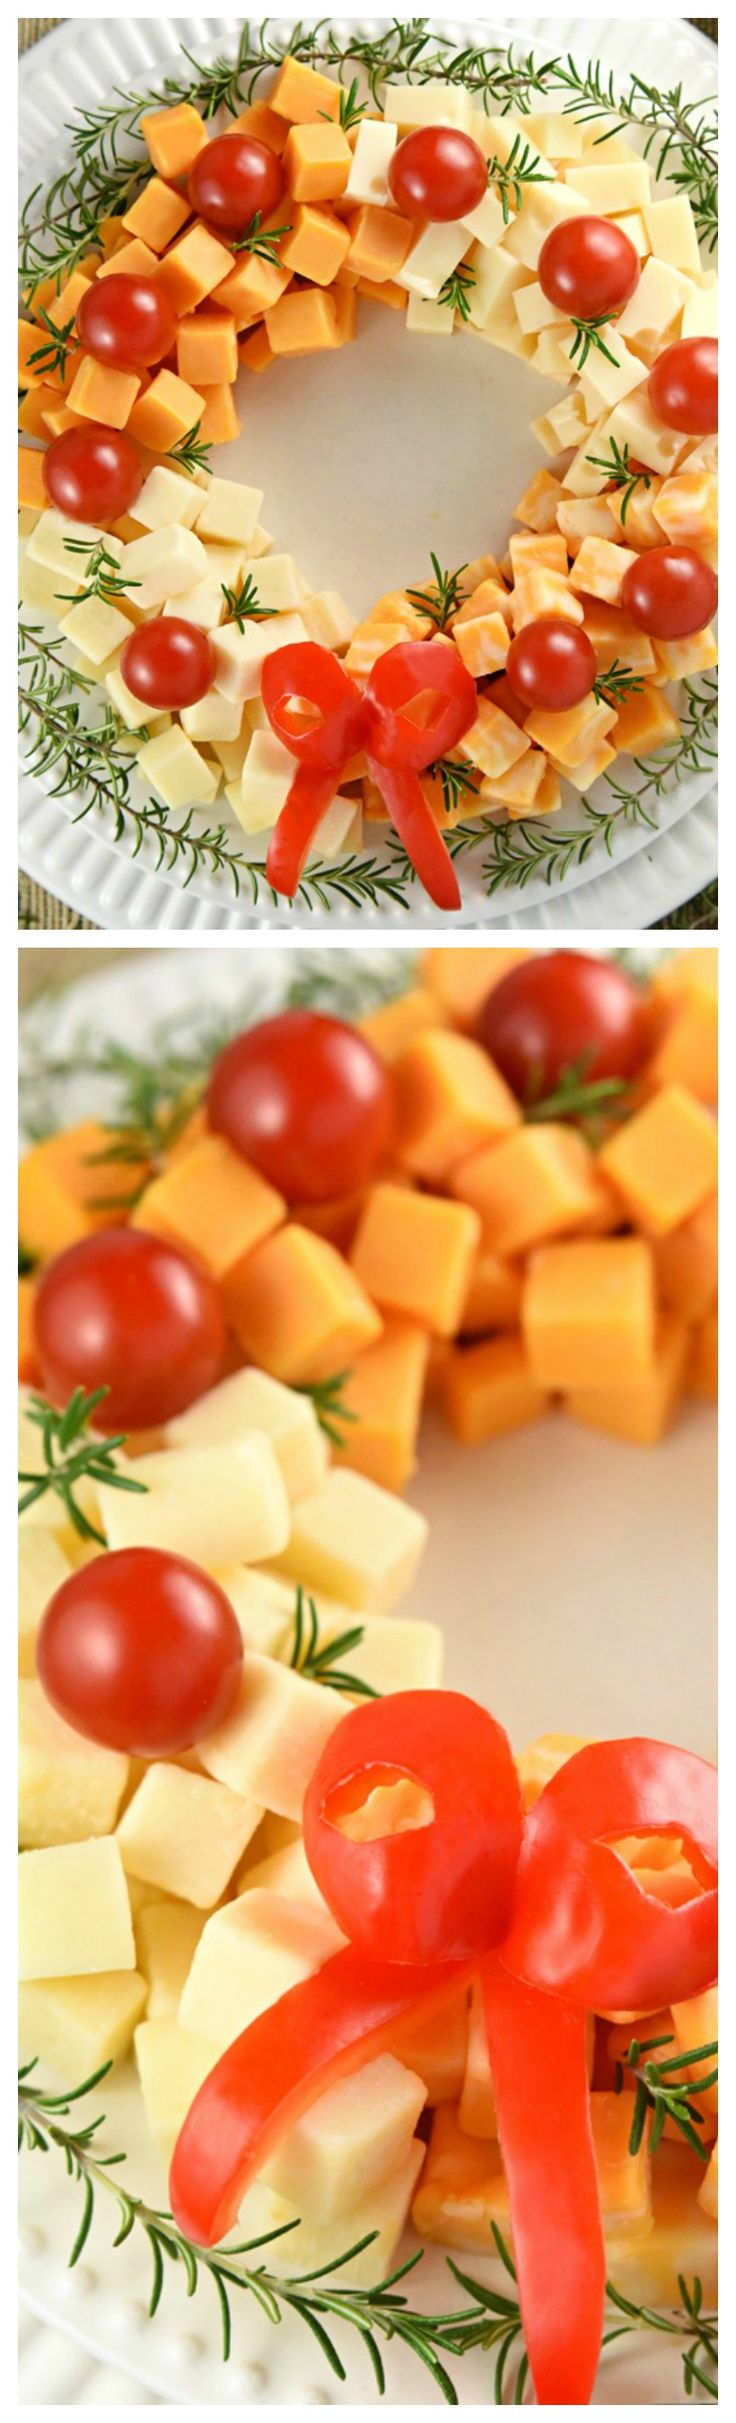 Holiday Cheese Wreath ~ An easy and festive Holiday Cheese Wreath party appetizer